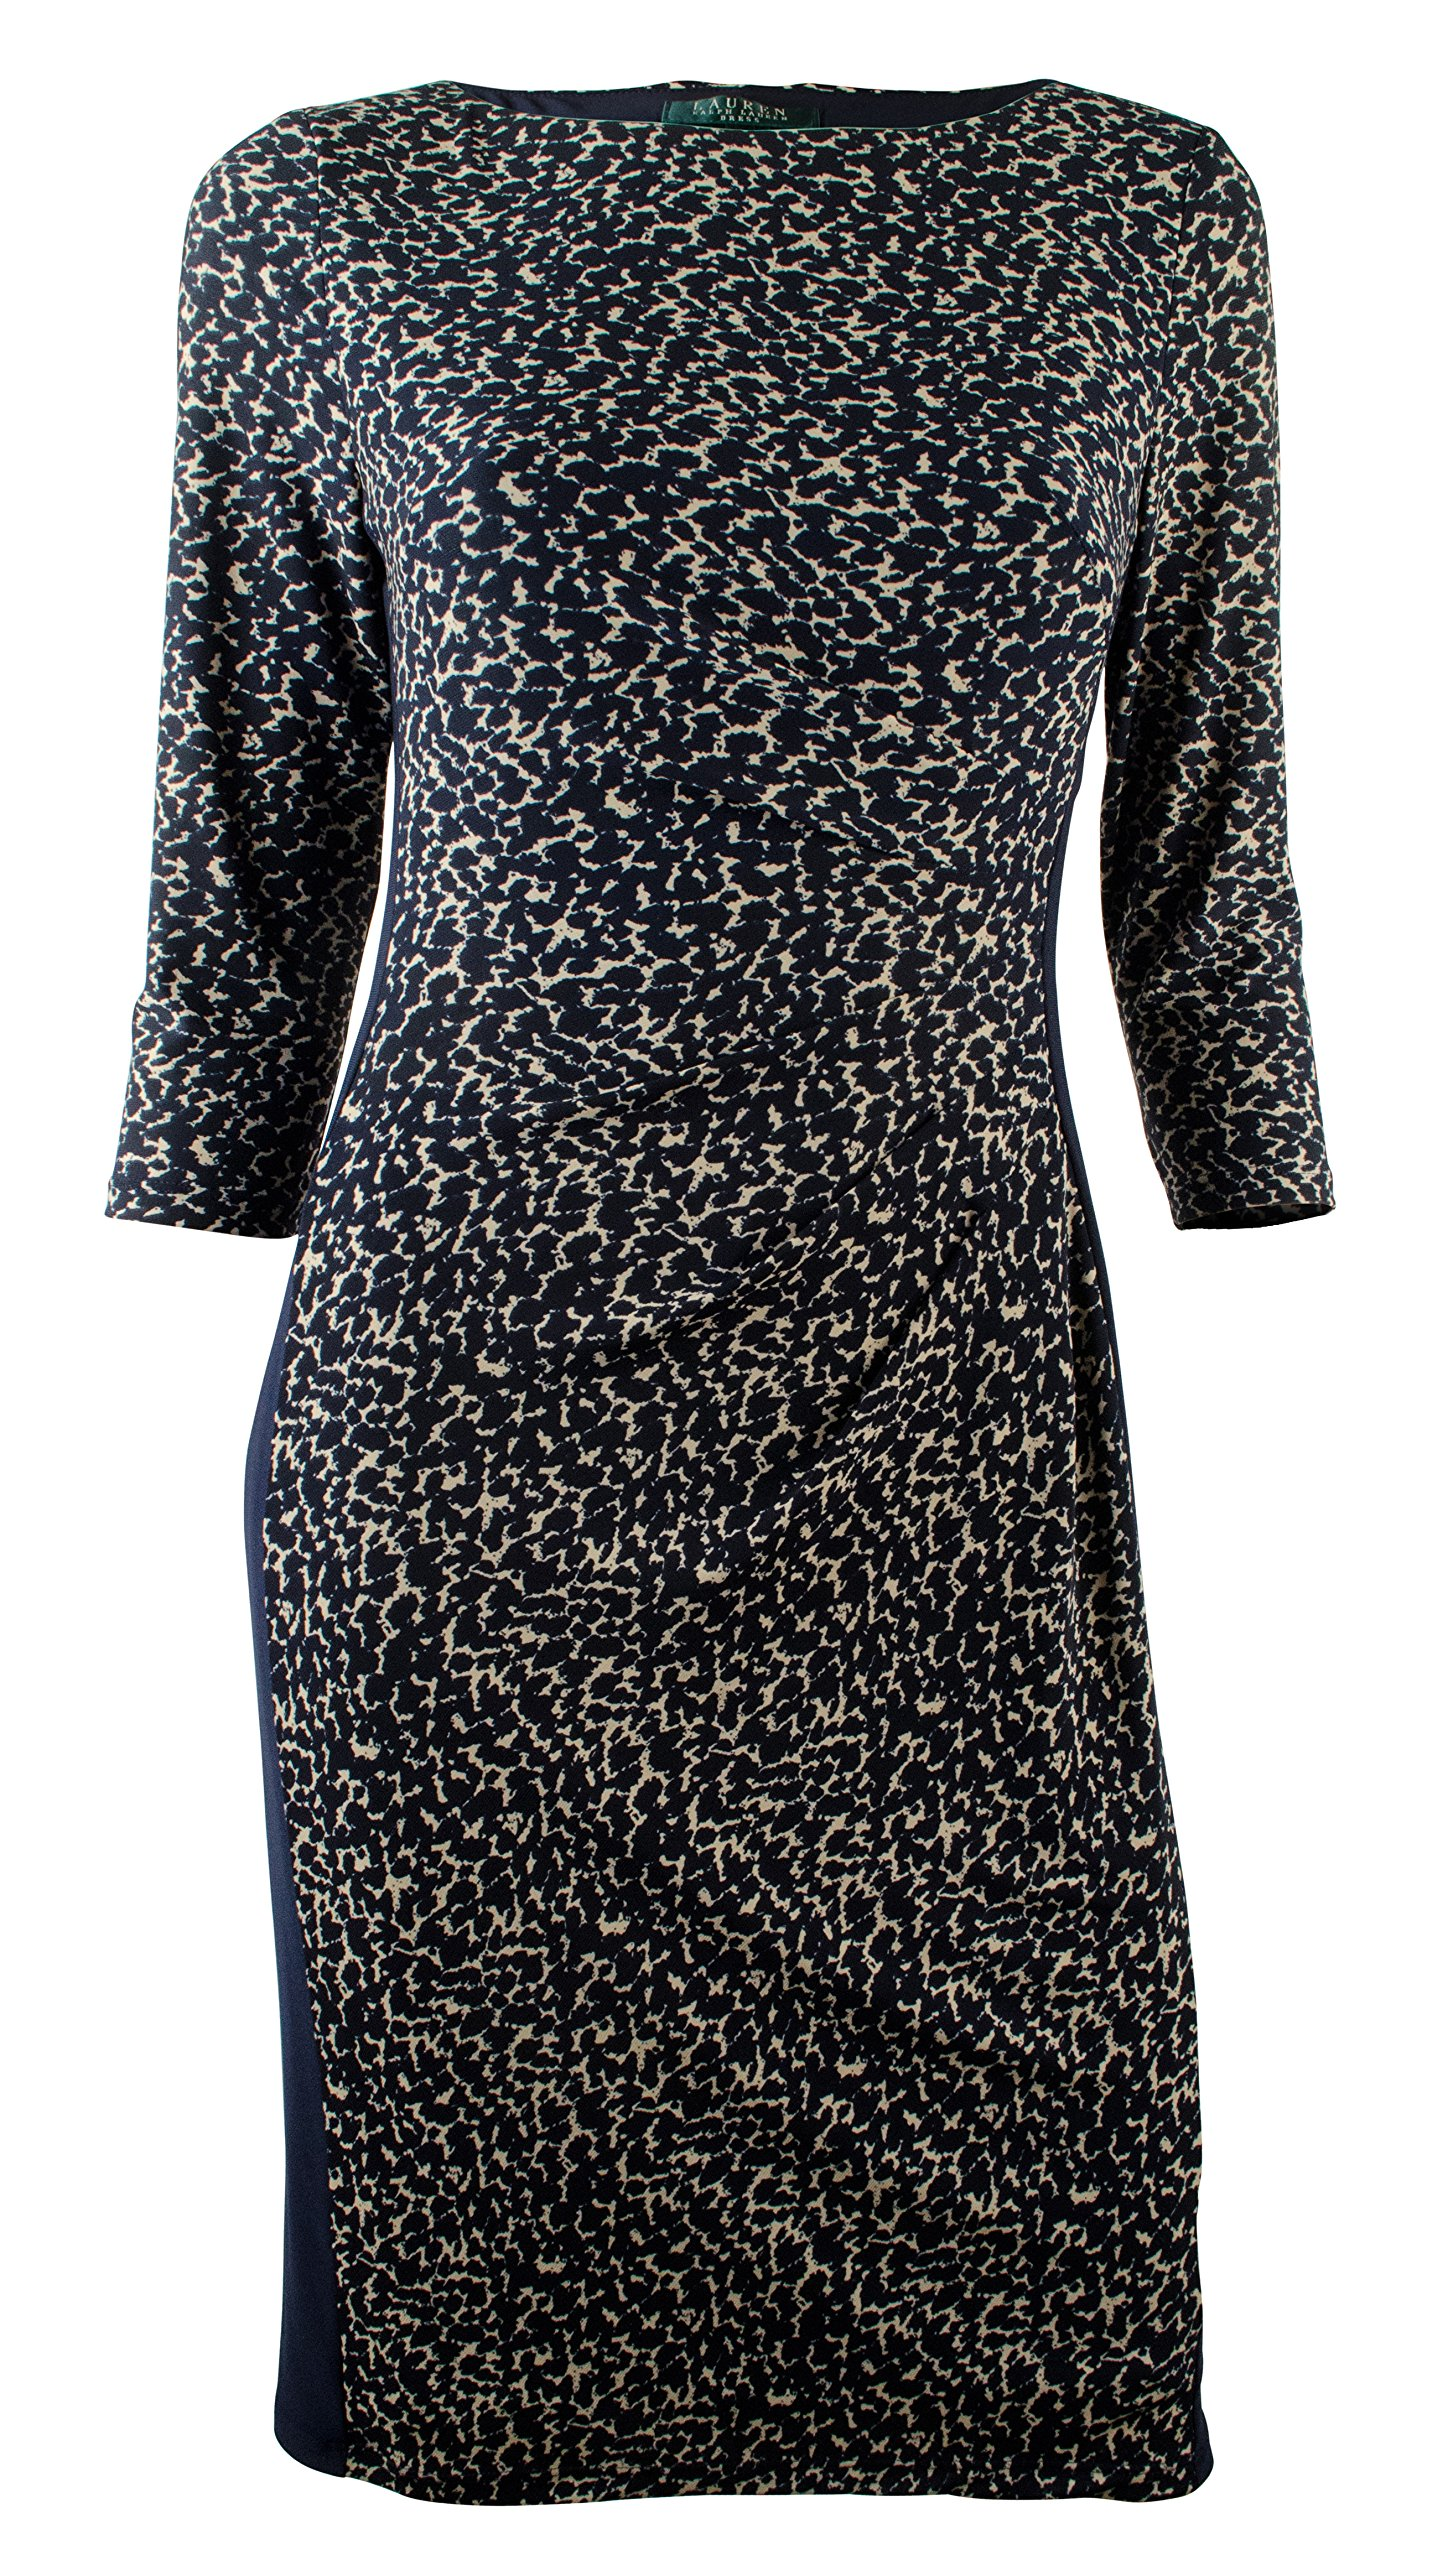 Ralph Lauren Women's Plus Print Bateau Neck Jersey Dress-BtLh-22W by RALPH LAUREN (Image #1)